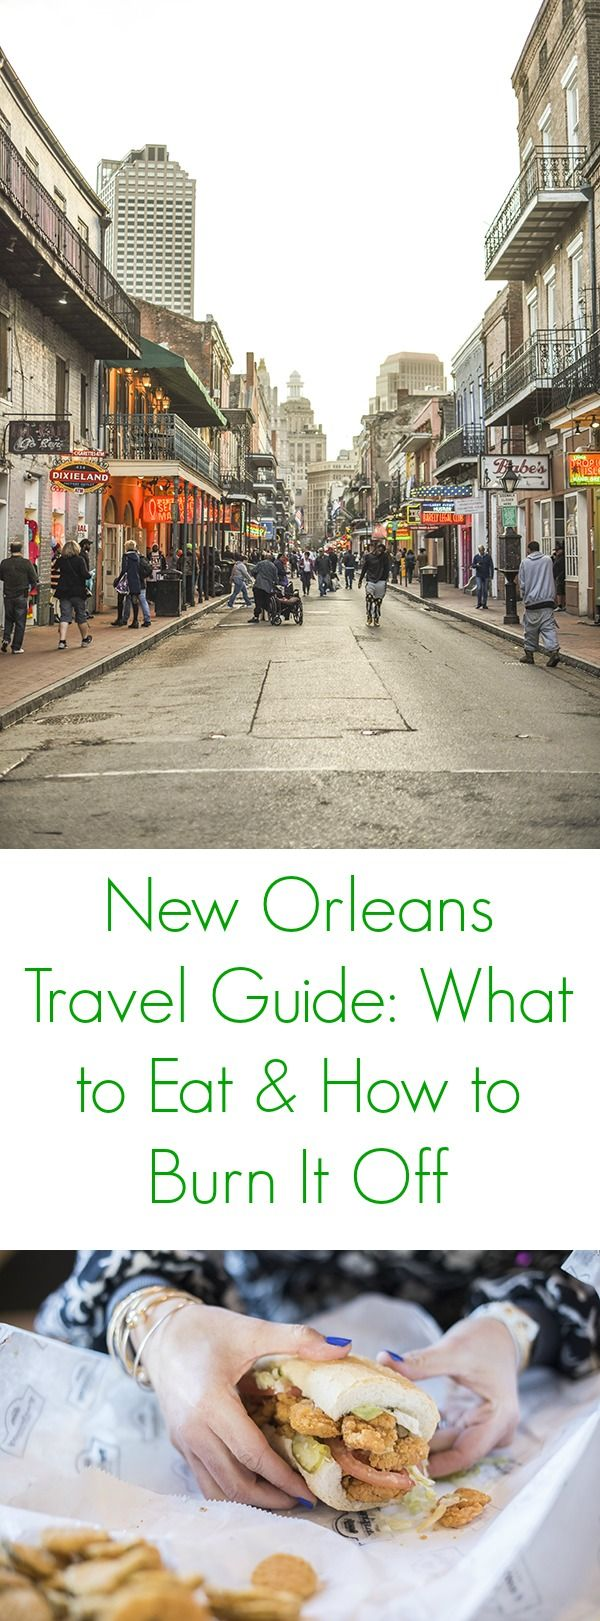 The ultimate travel guide to New Orleans. I'll tell you where to stay, what to eat and how to burn it off!